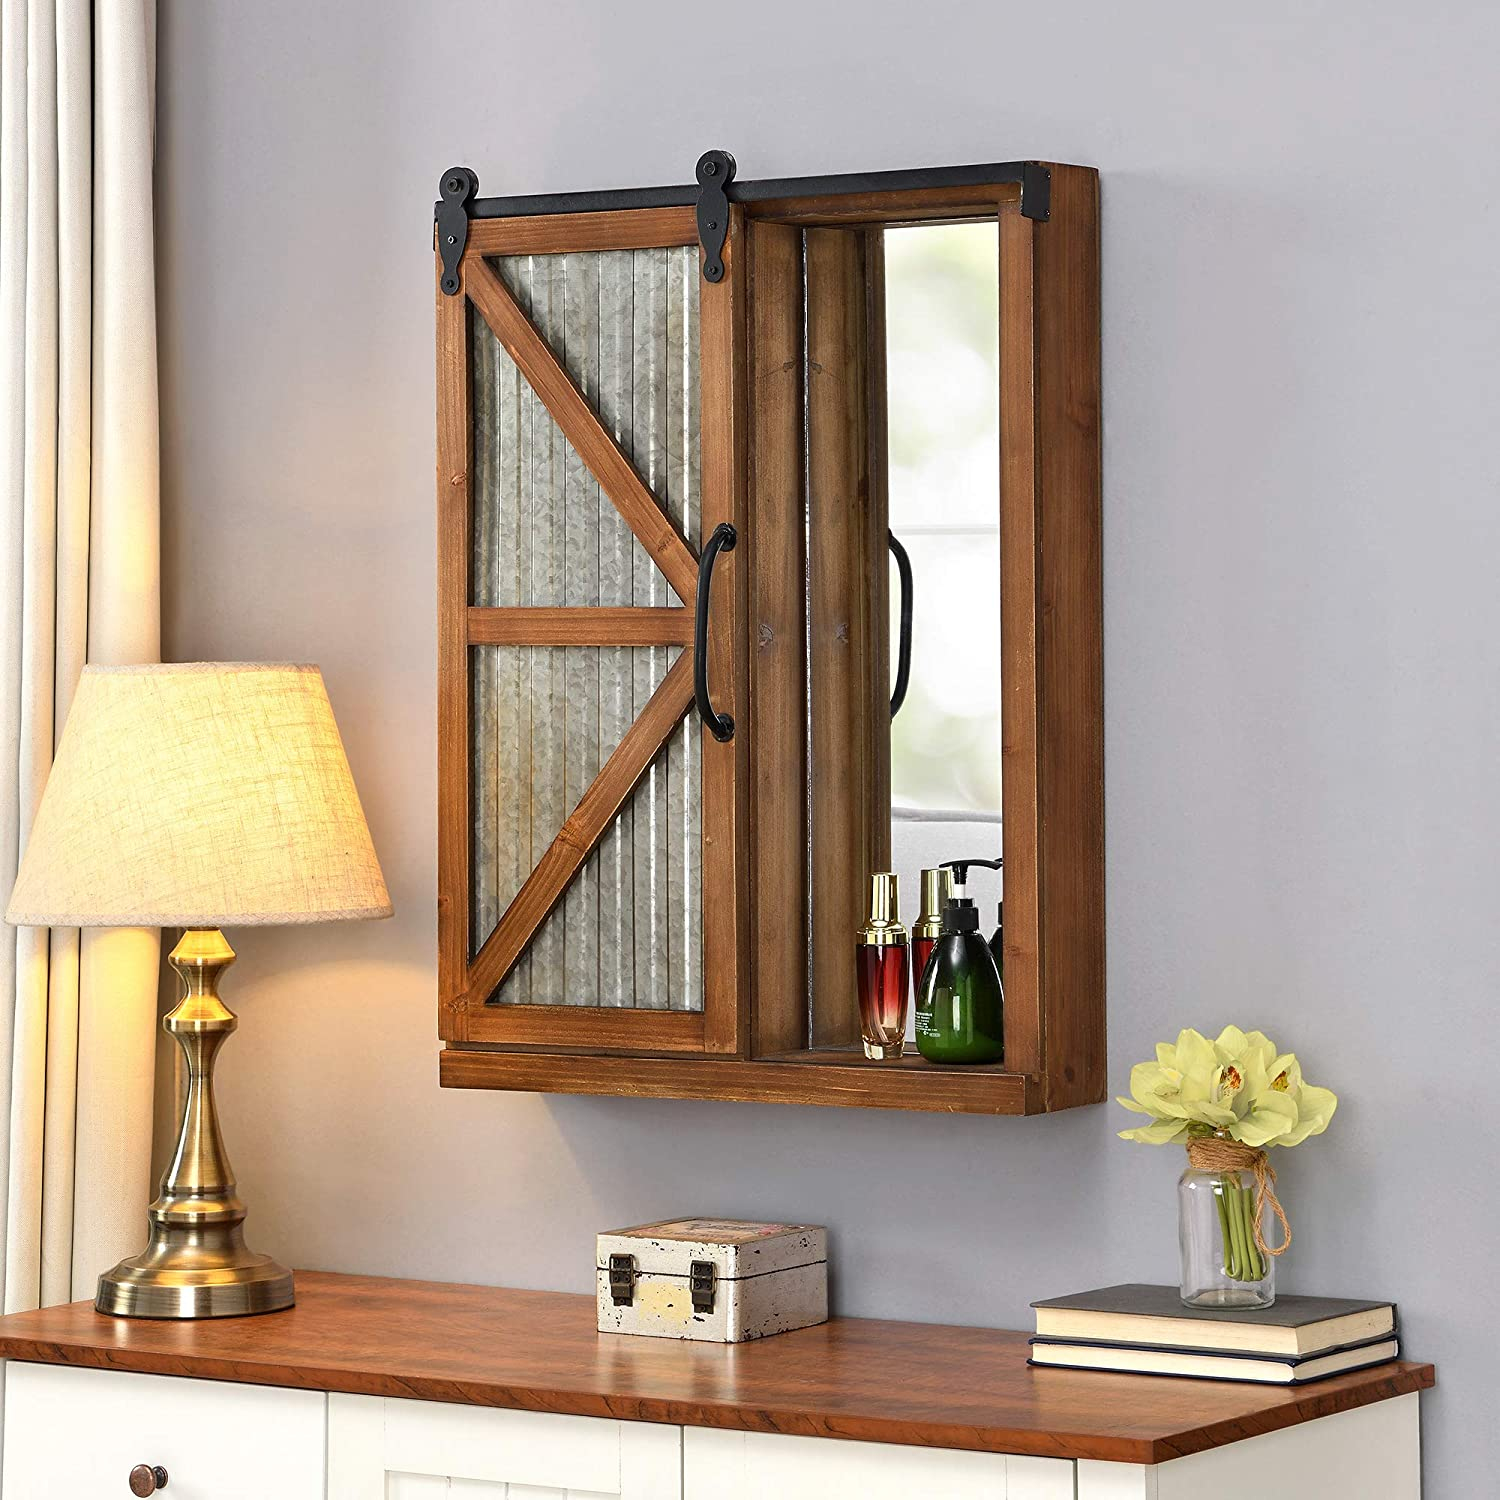 FirsTime & Co. Brown Winona Farmhouse Barn Door Cabinet Mirror, American Designed, Brown, 21 x 5.5 x 28 inches 21 inches